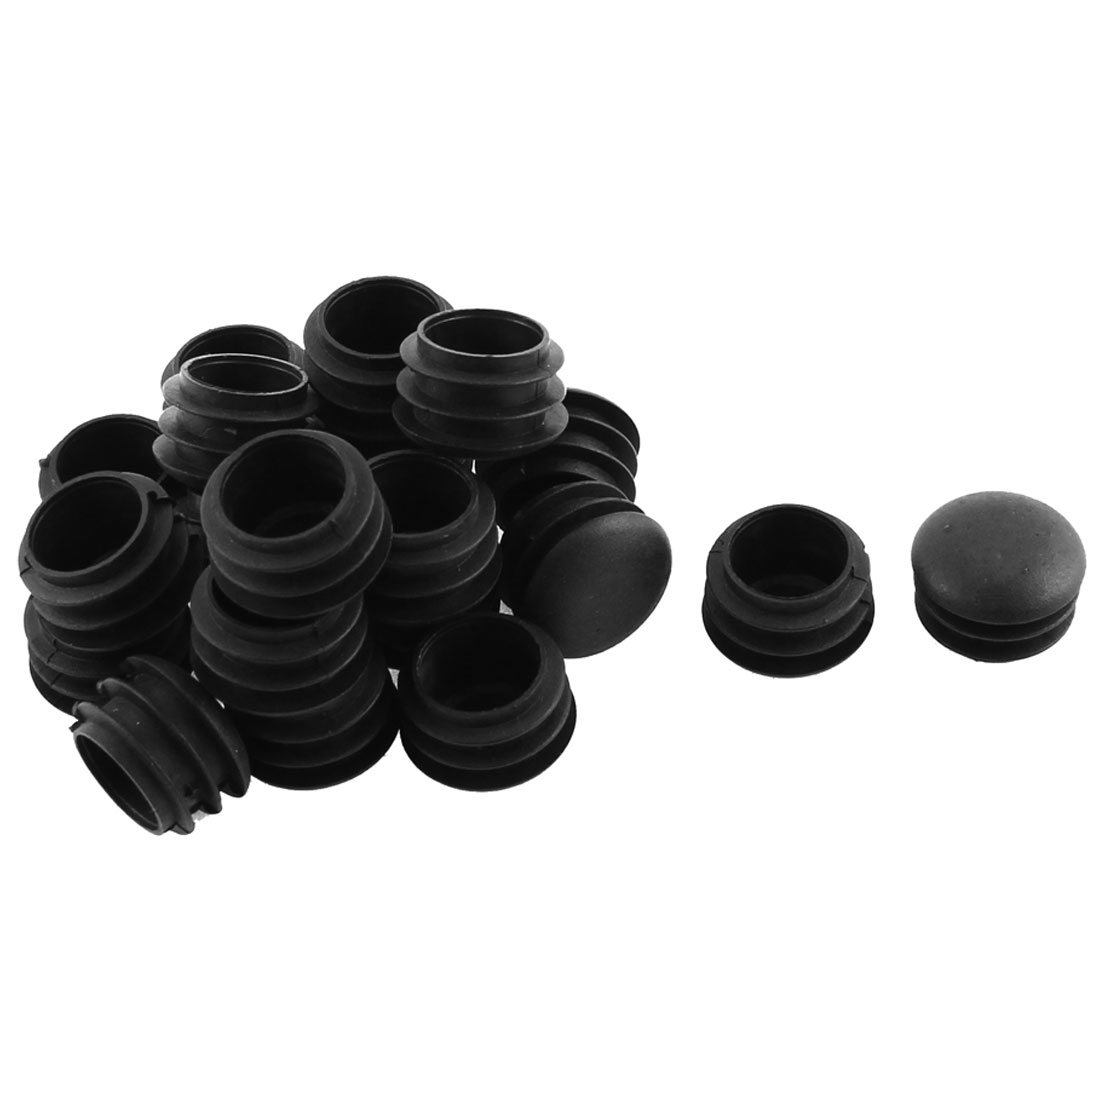 Furniture Plastic Blanking End Tube Caps Cover Inserts 25mm Dia 20pcs